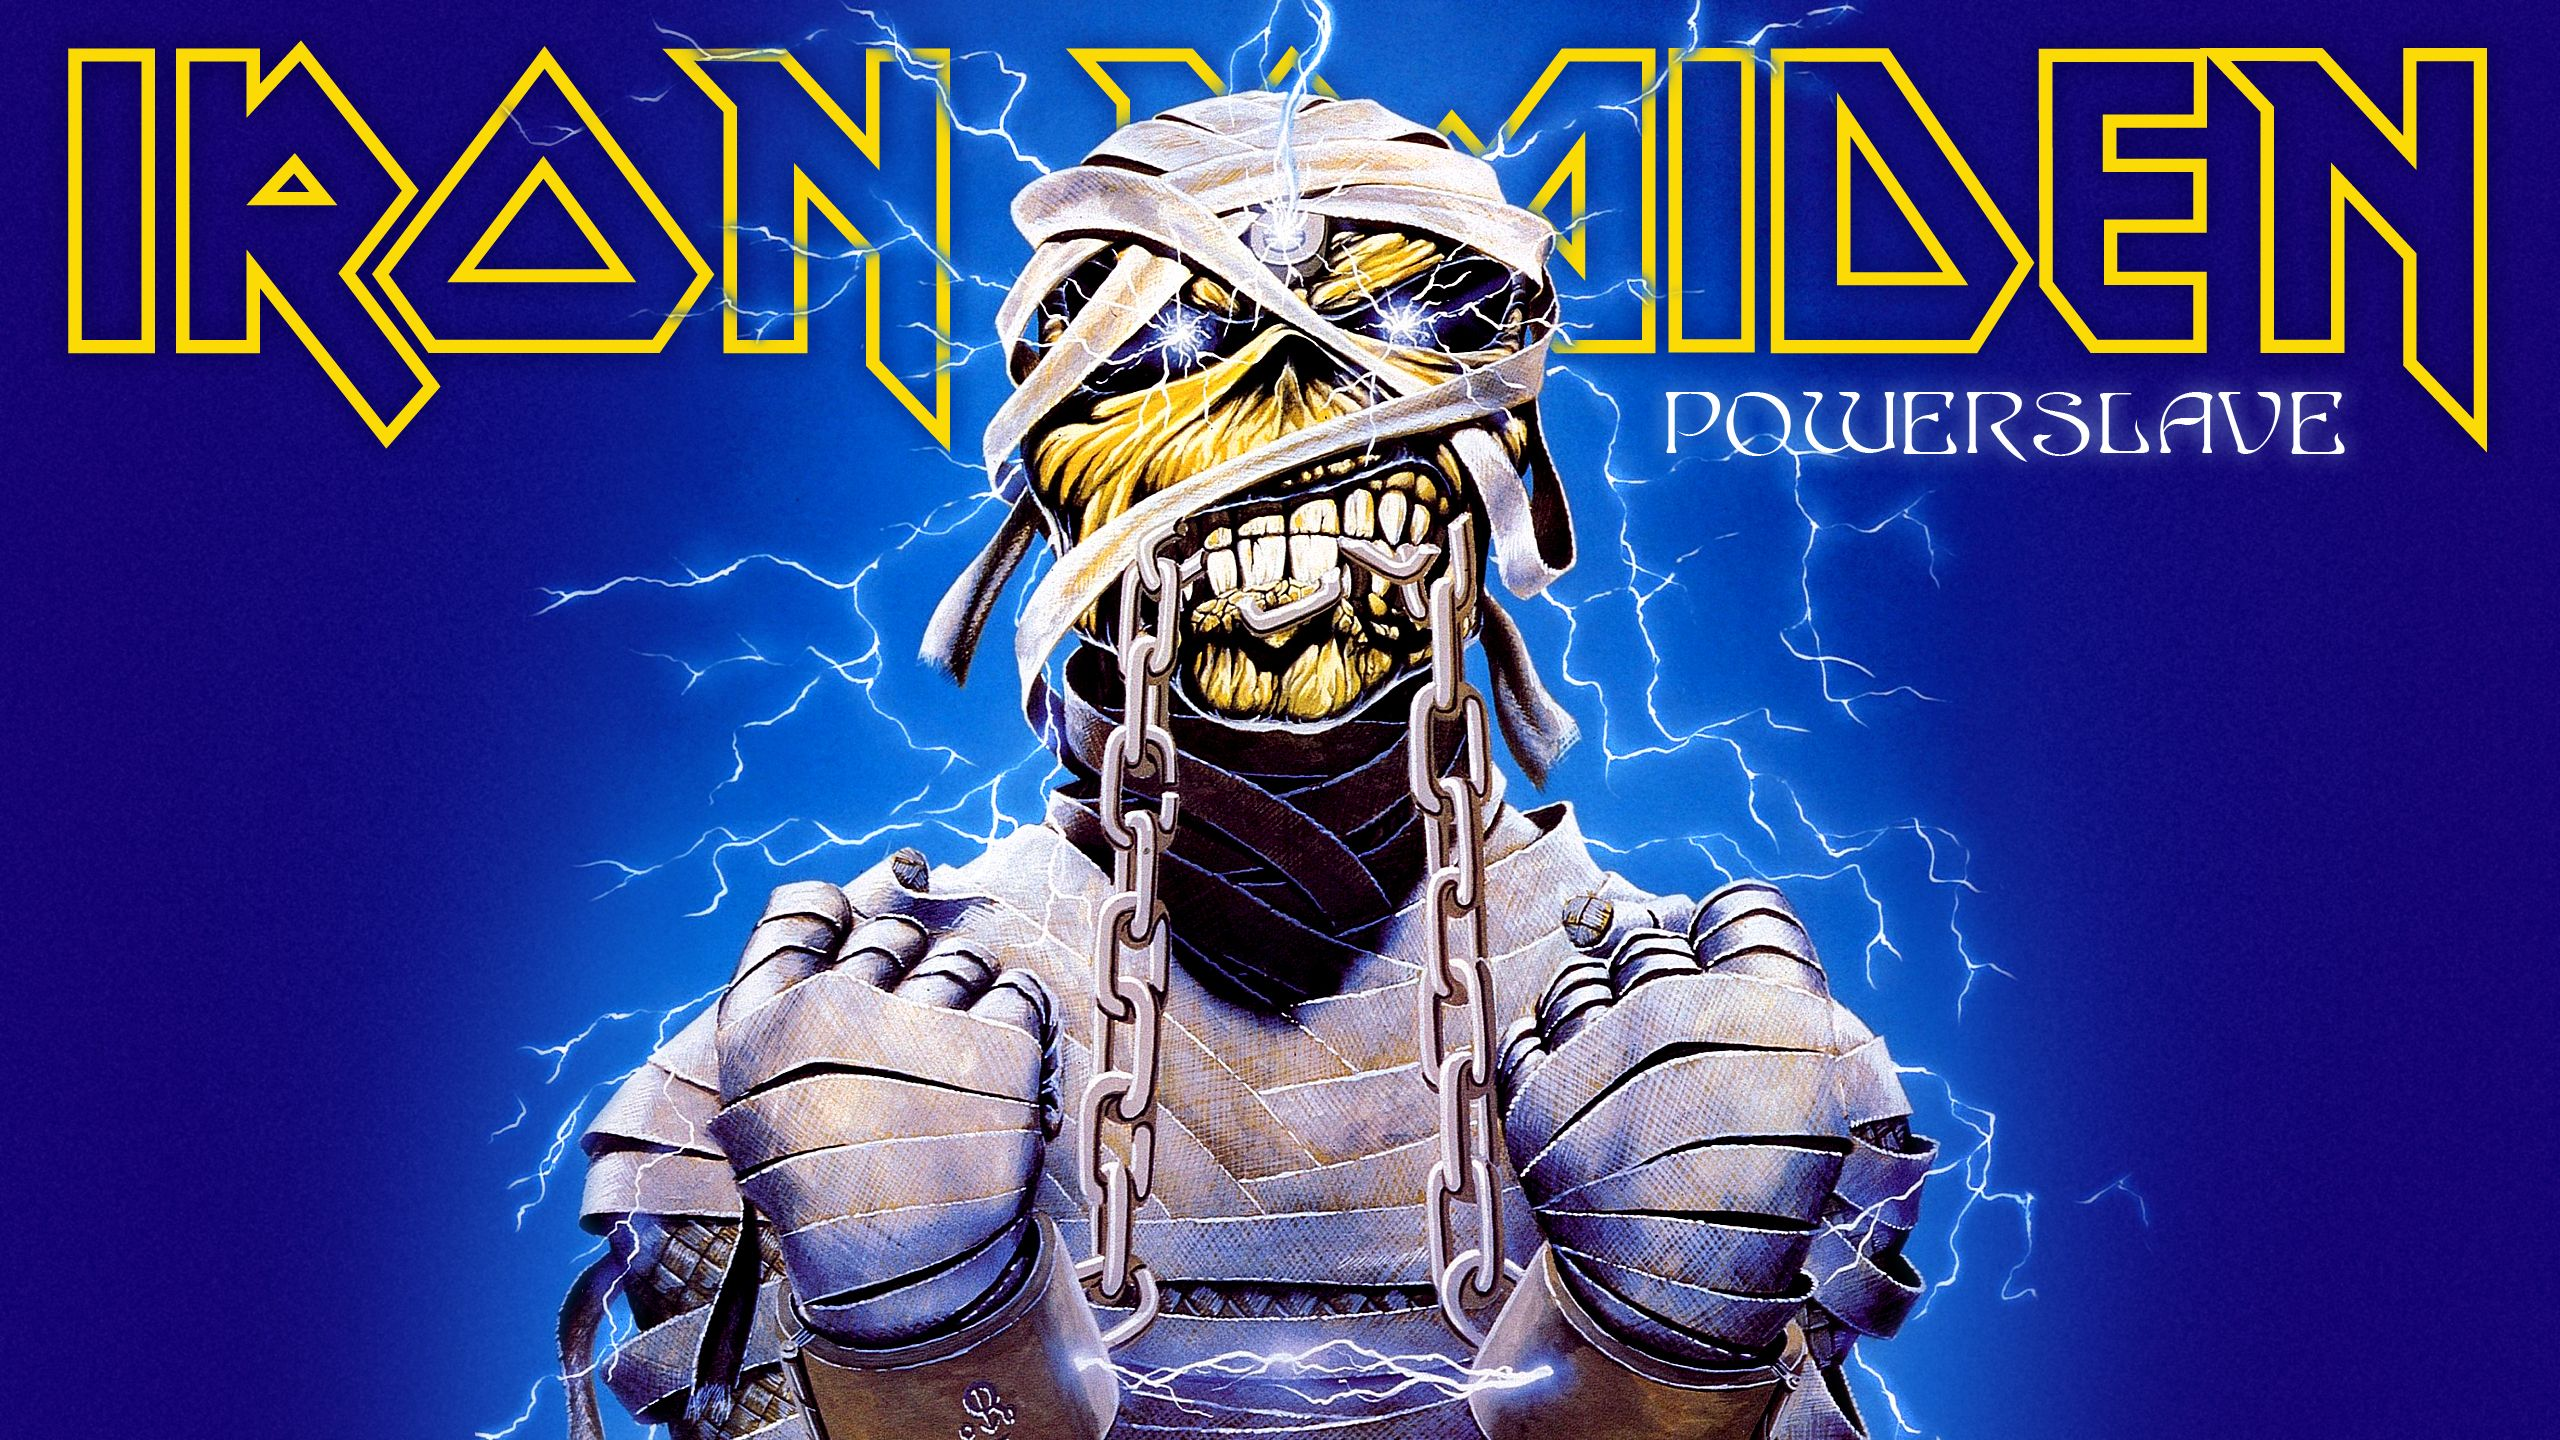 Iron Maiden - Powerslave | Iron maiden, Afiches, Pantalla